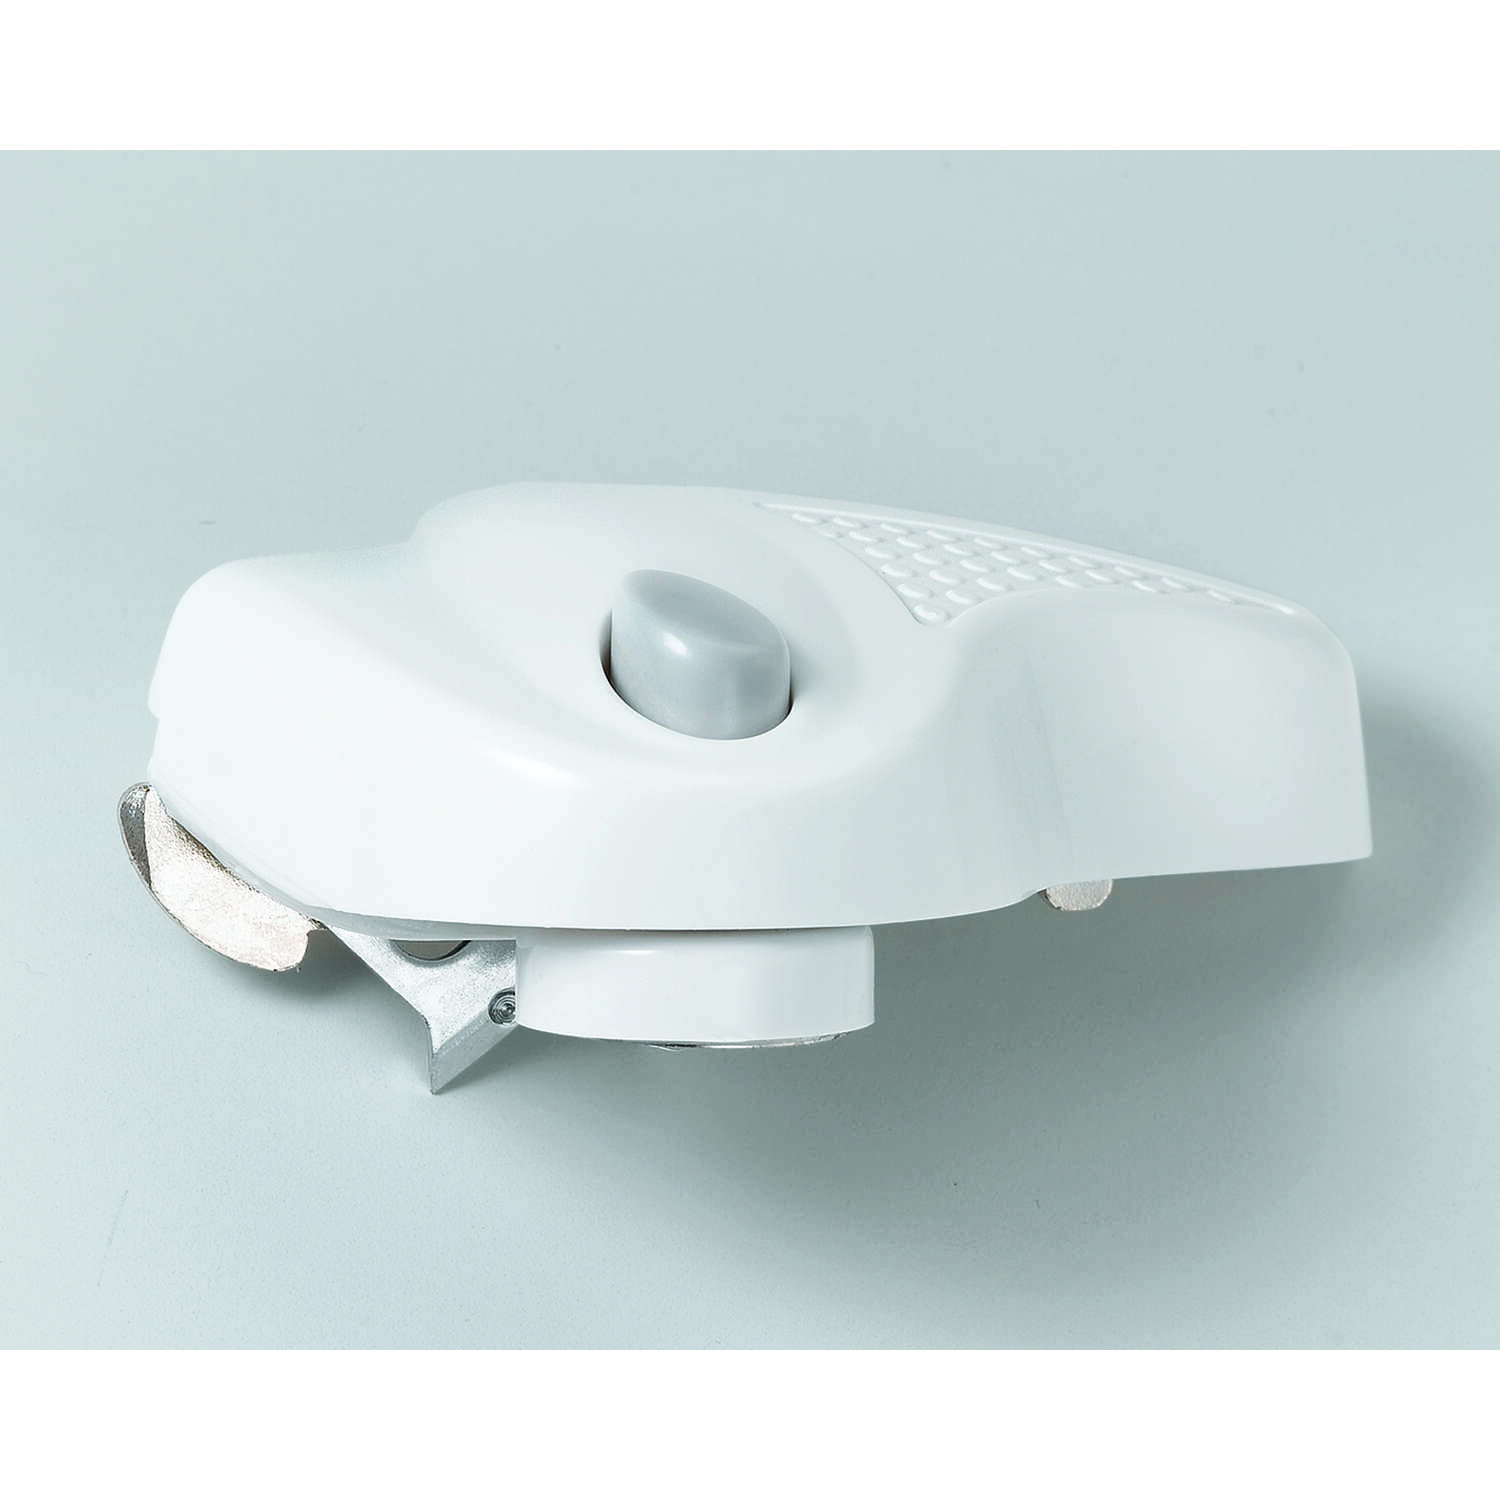 Proctor Silex  White  Electric Can Opener  Magnetic Lid Holder